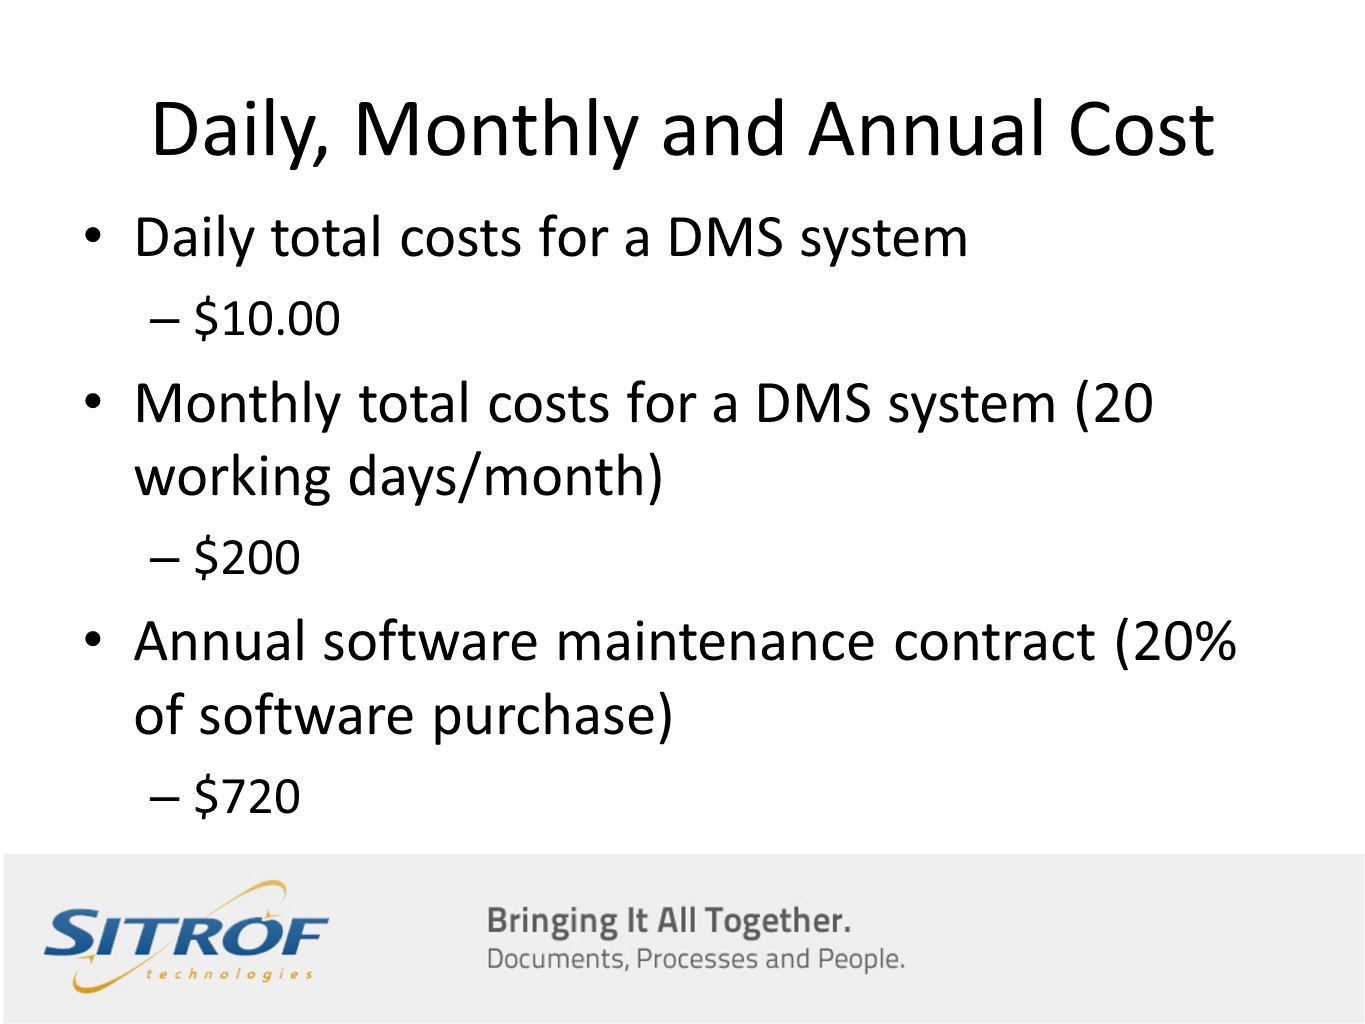 Daily, Monthly and Annual Cost Daily total costs for a DMS system – $10.00 Monthly total costs for a DMS system (20 working days/month) – $200 Annual software maintenance contract (20% of software purchase) – $720